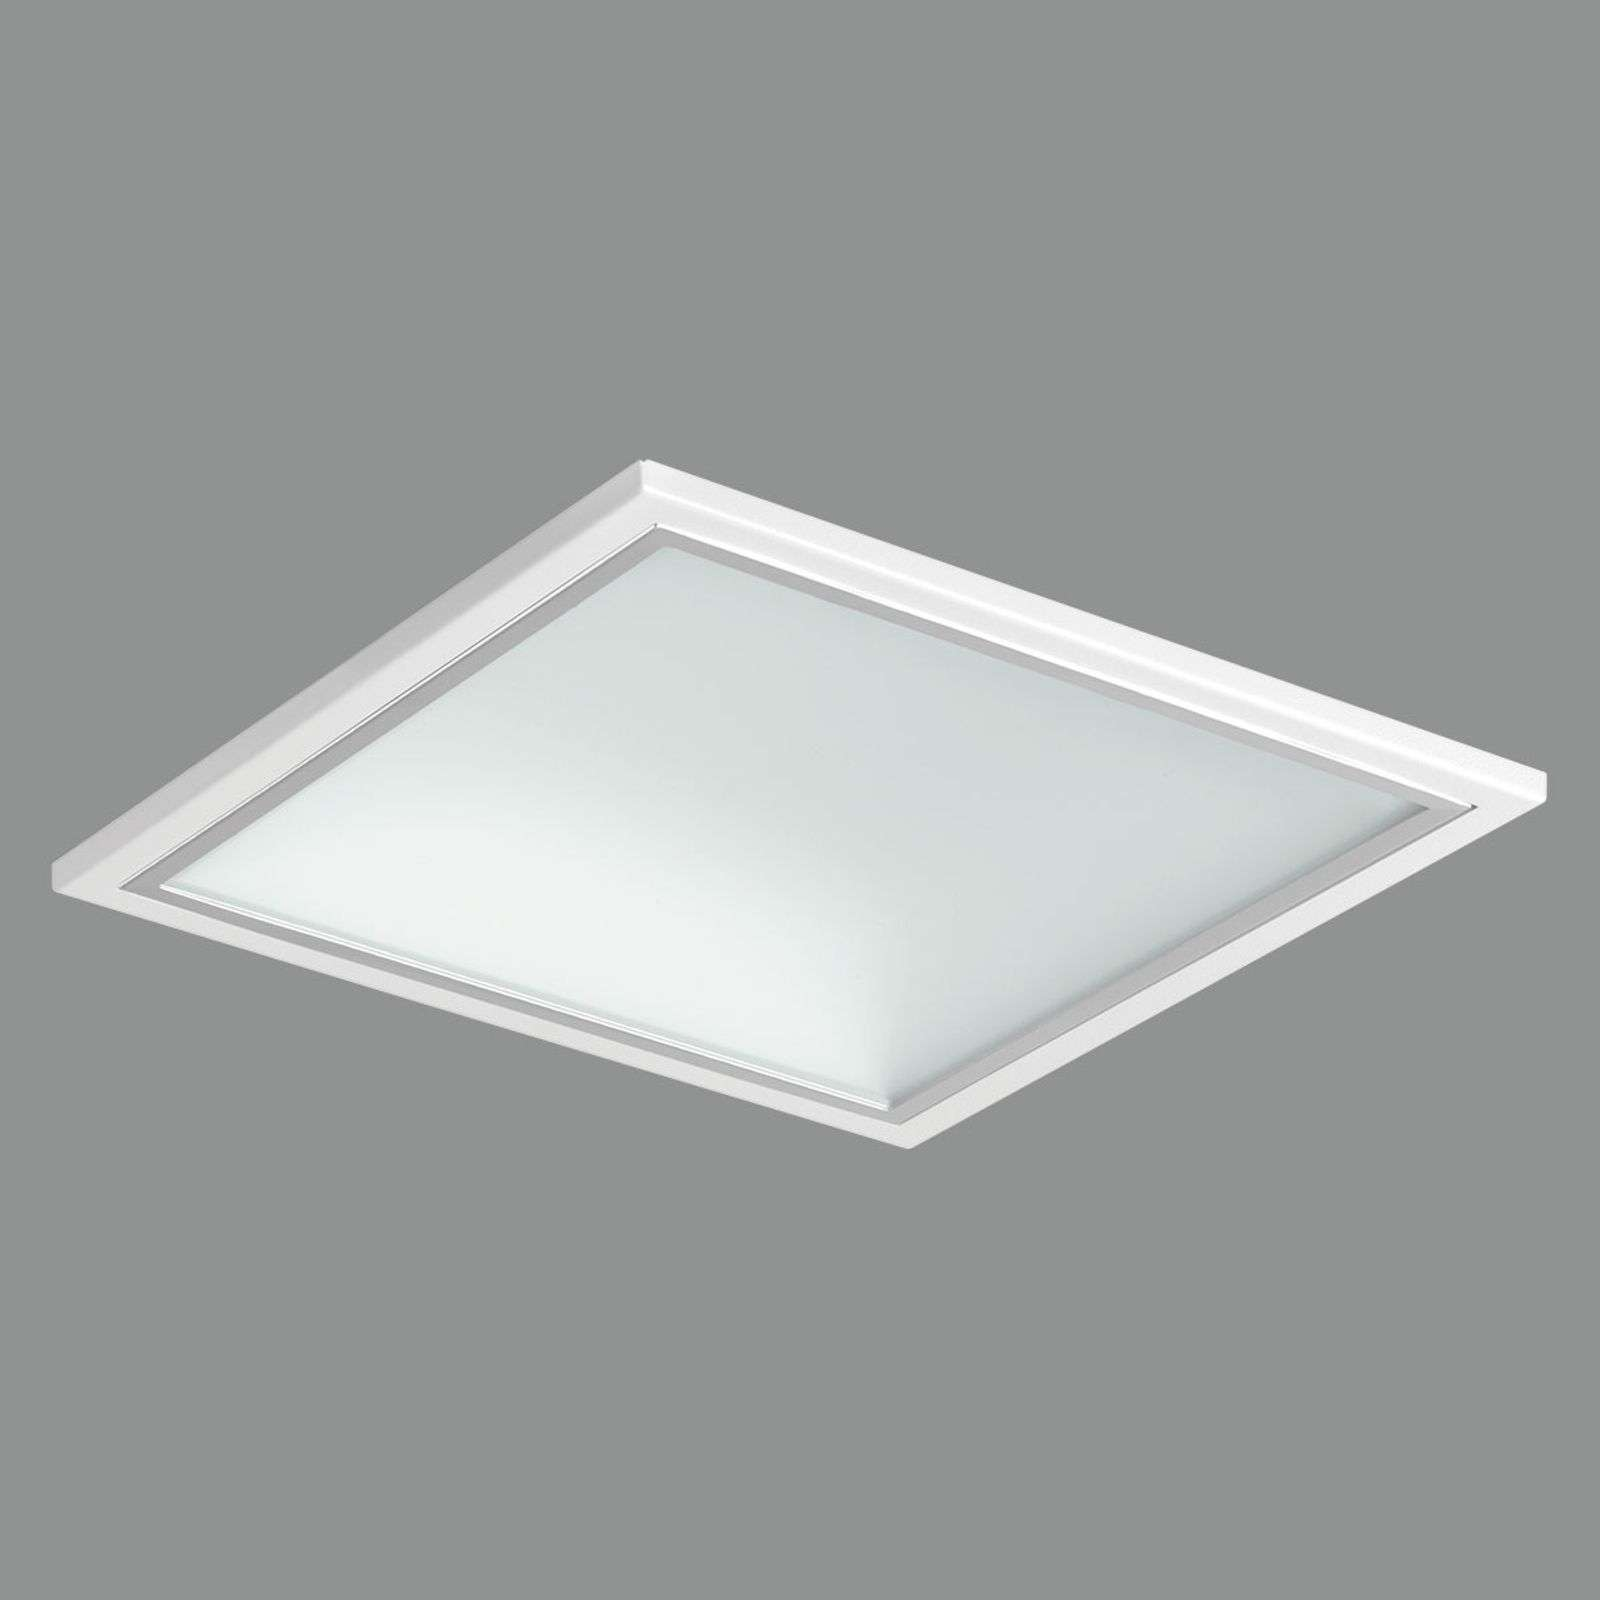 Noviel L PRO downlight encastrable LED 89° 3 000 K